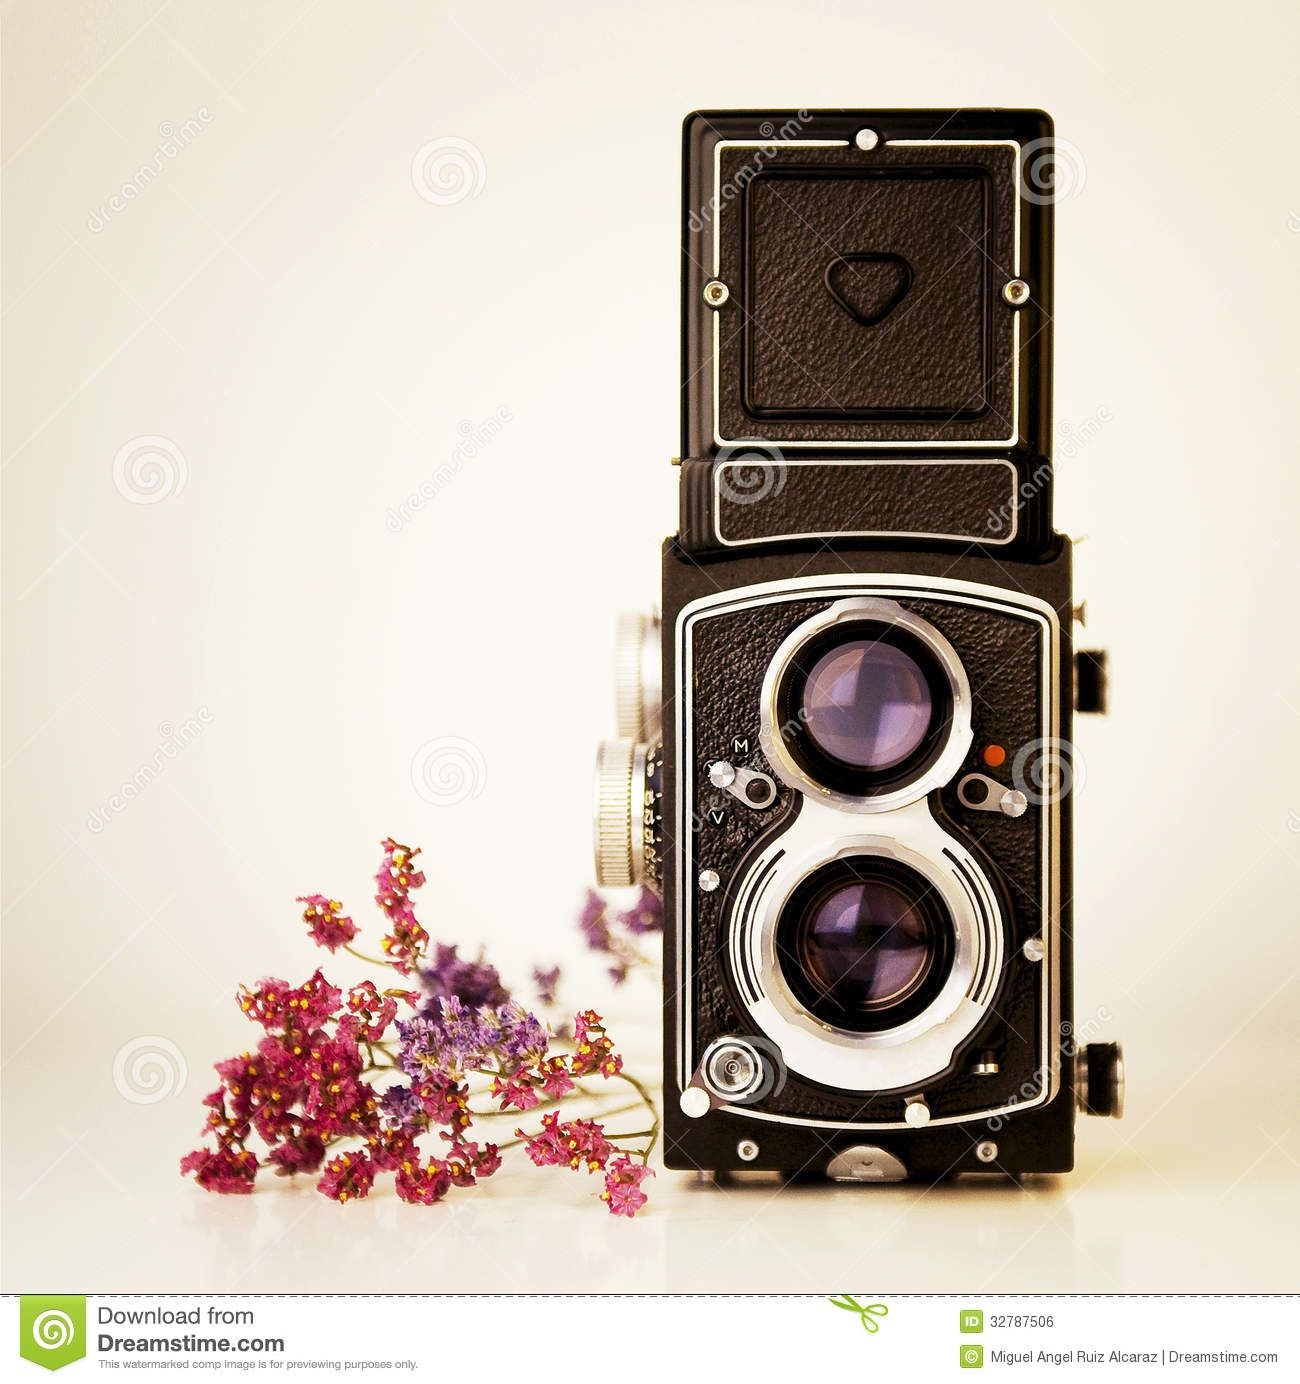 Vintage Camera Tlr - Download From Over 30 Million High Quality Stock Photos, Images, Vectors. Sign up for FREE today. Image: 32787506